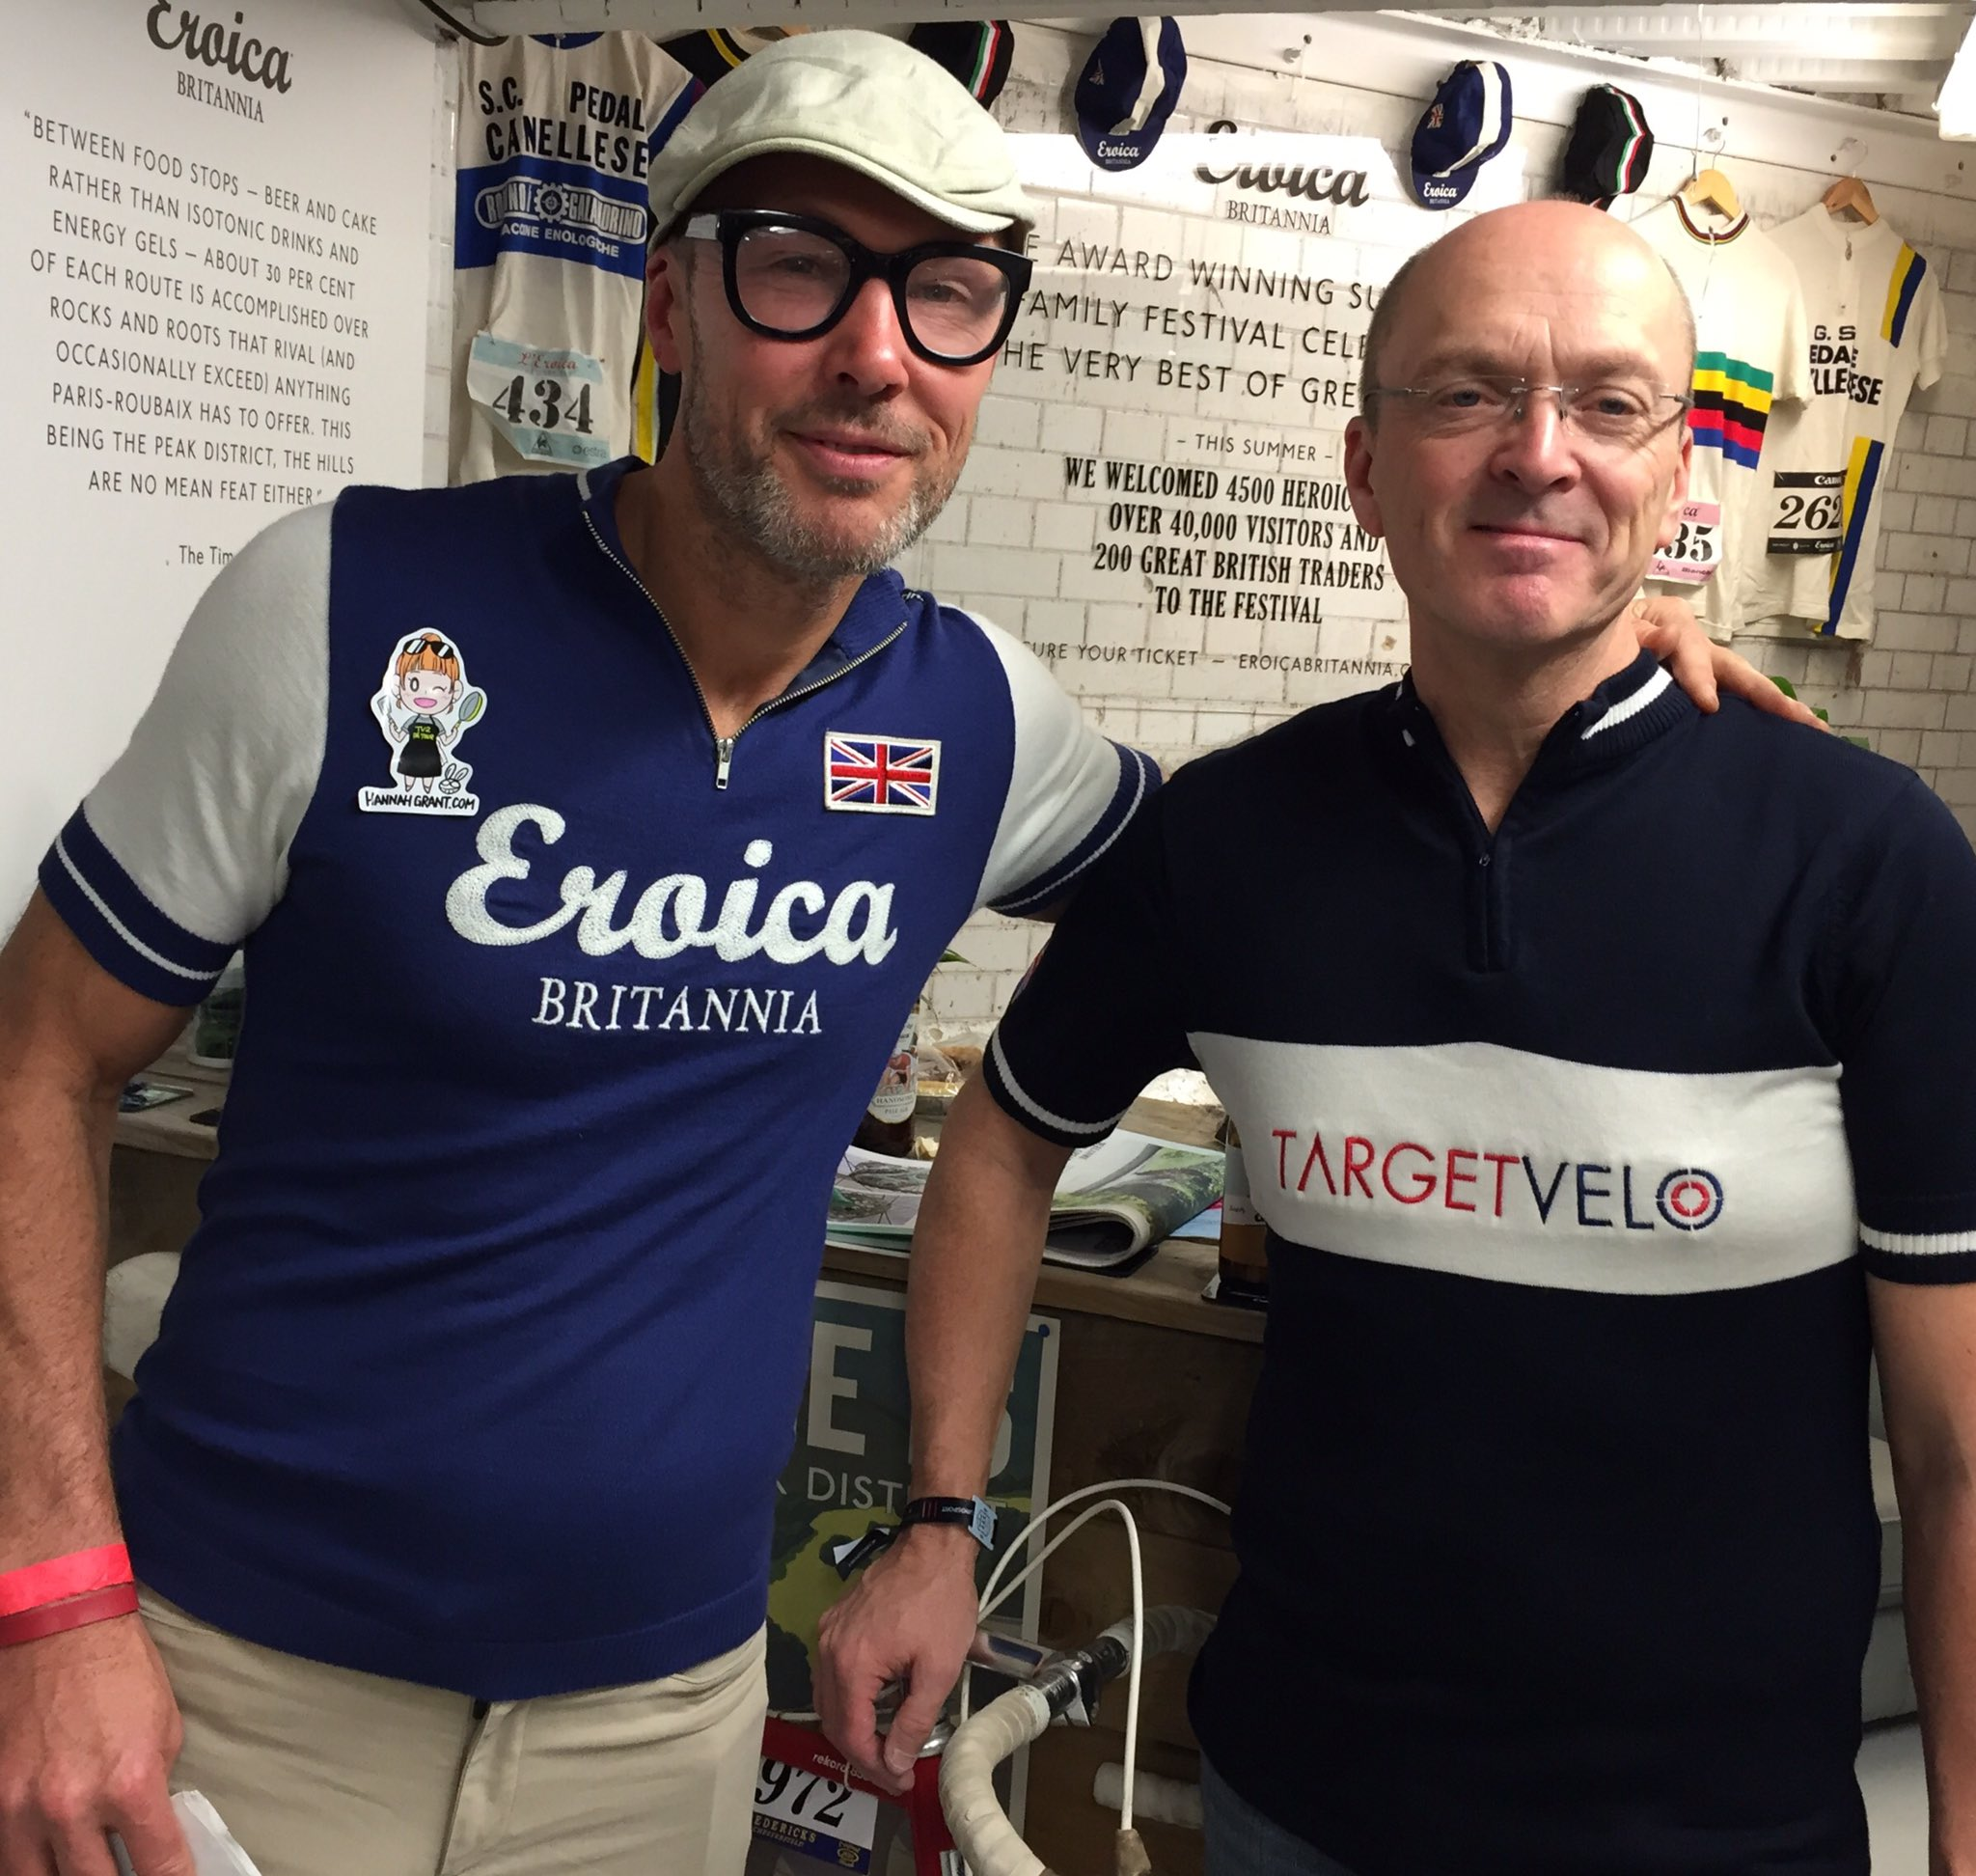 Nice to talk to the guys from #eroicabritannia at #Rouleurclassic #London #cycling #GCN https://t.co/NMmJxxYu3P